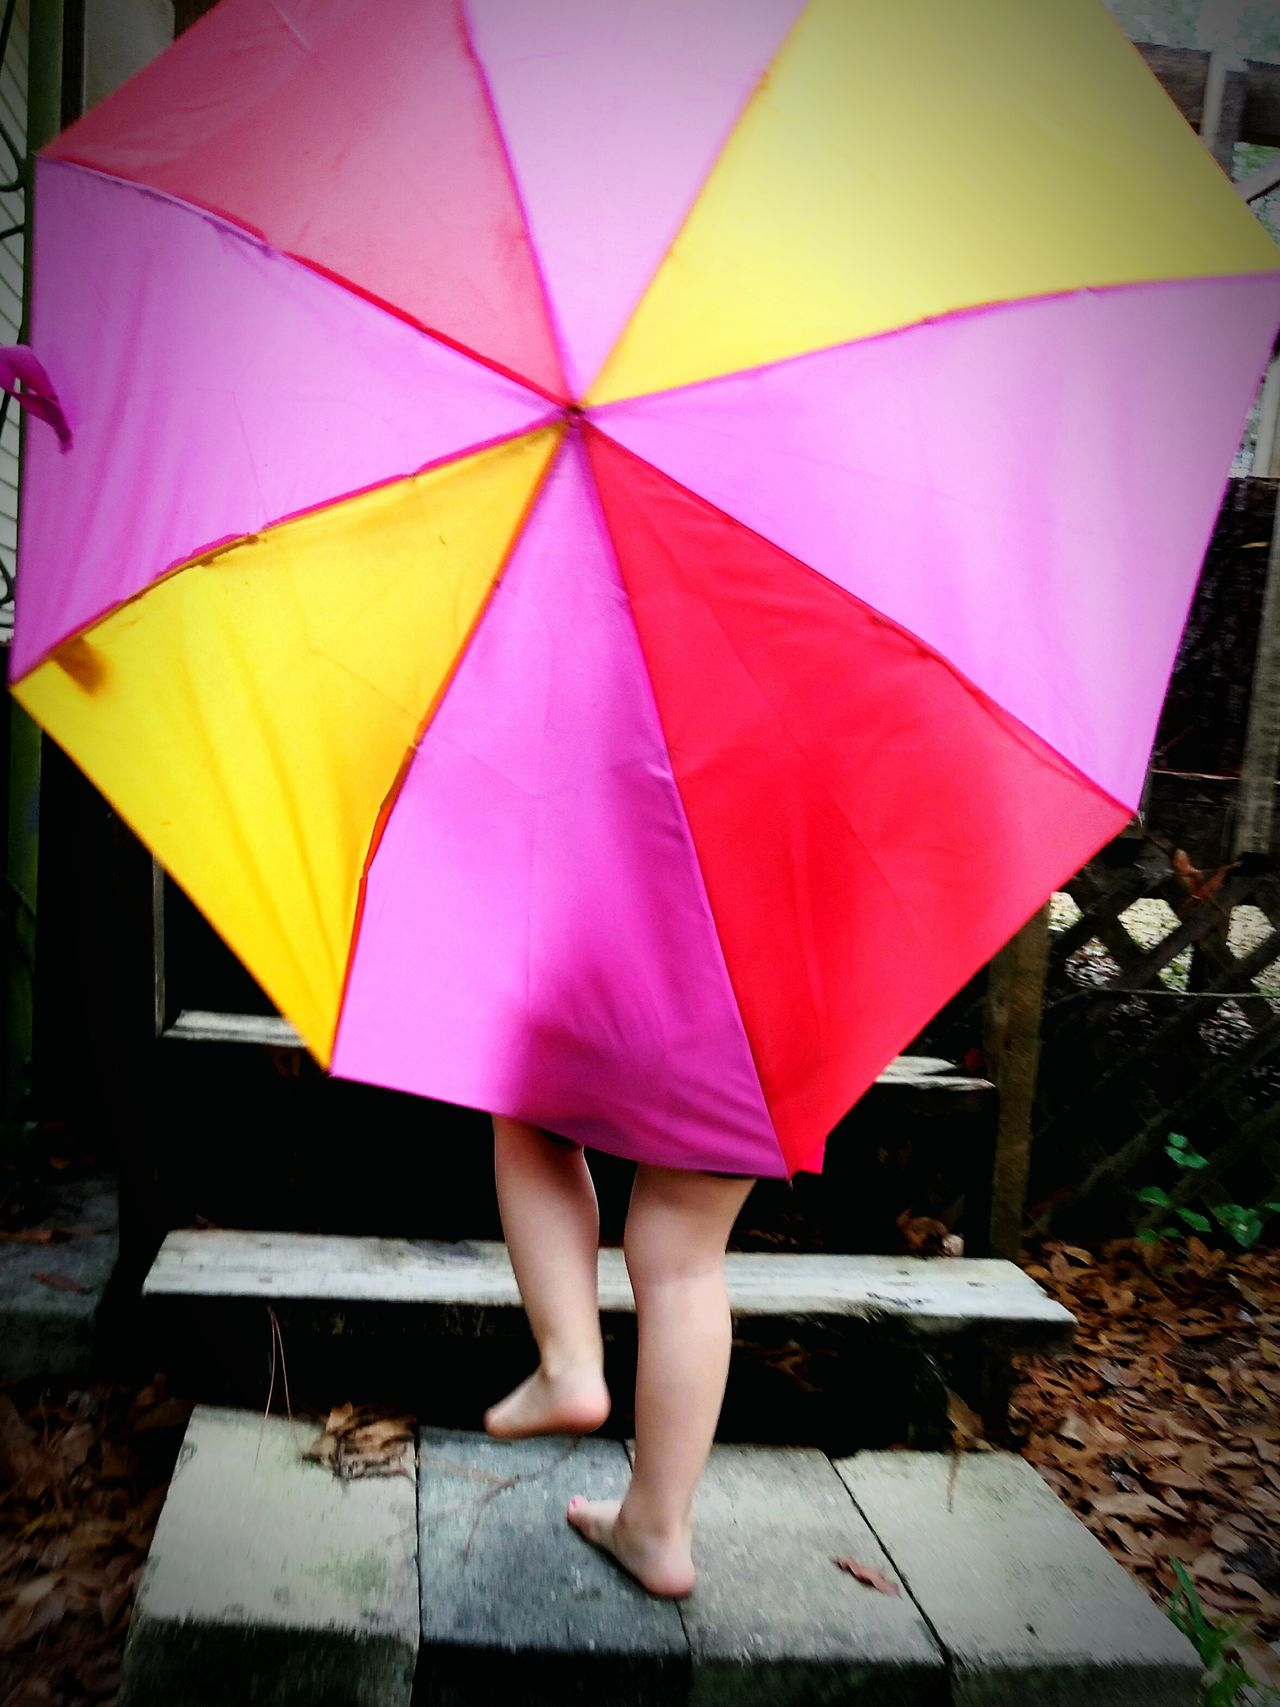 Rain And Rainbows Multi Colored Umbrellas Playing In The Rain Singing In The Rain From Behind Childhood People Family Weekends Spring Toddlers  Millennial Pink